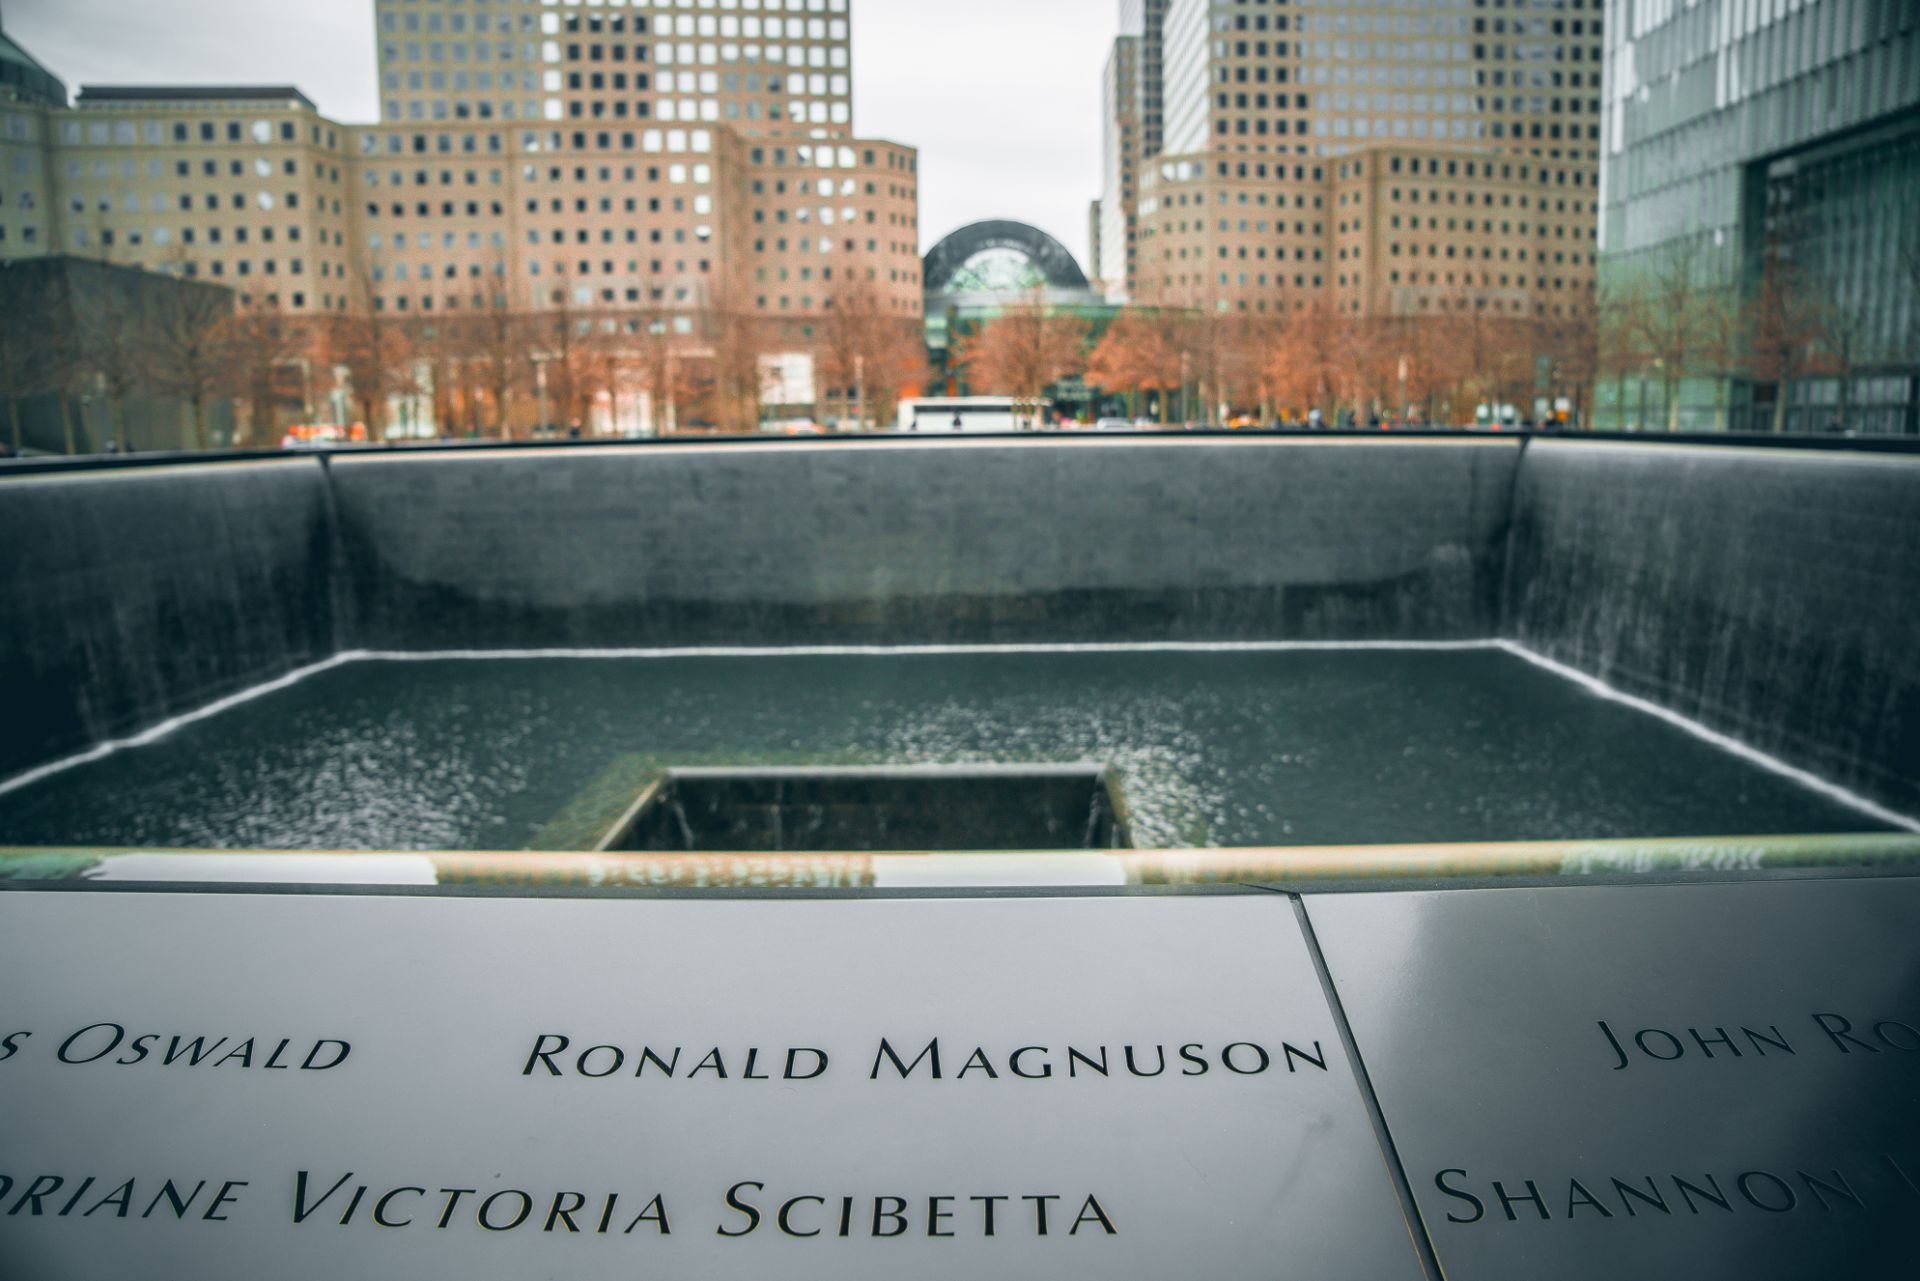 peoples-names-surrounding-a-pool-of-water-at-911-memorial-and-museum